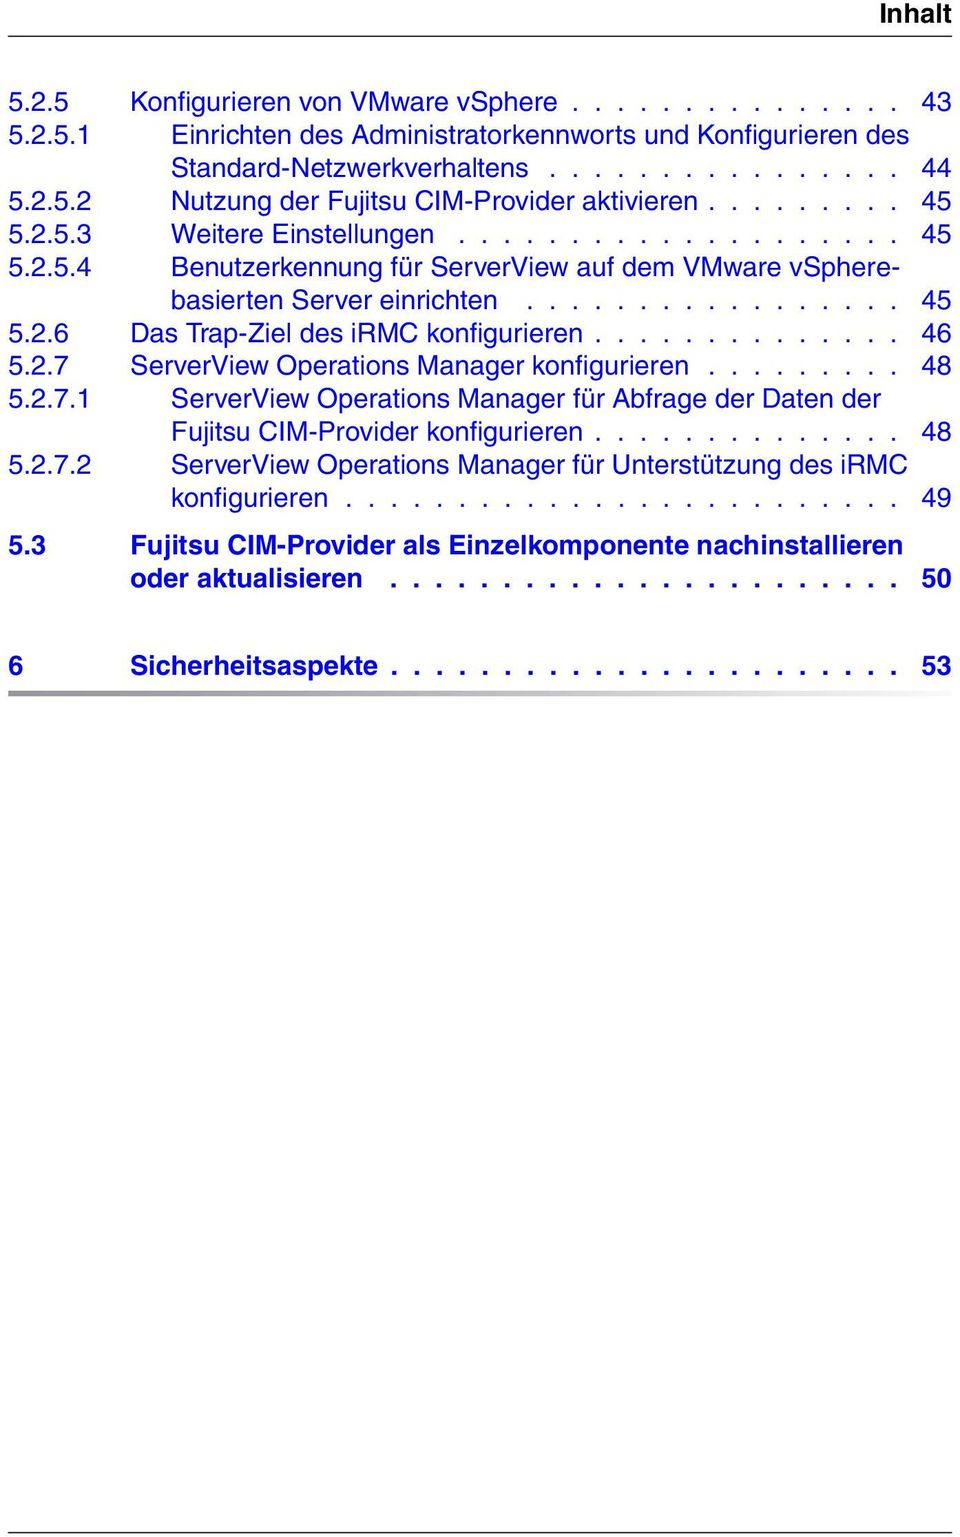 ............. 46 5.2.7 ServerView Operations Manager konfigurieren......... 48 5.2.7.1 ServerView Operations Manager für Abfrage der Daten der Fujitsu CIM-Provider konfigurieren.............. 48 5.2.7.2 ServerView Operations Manager für Unterstützung des irmc konfigurieren.